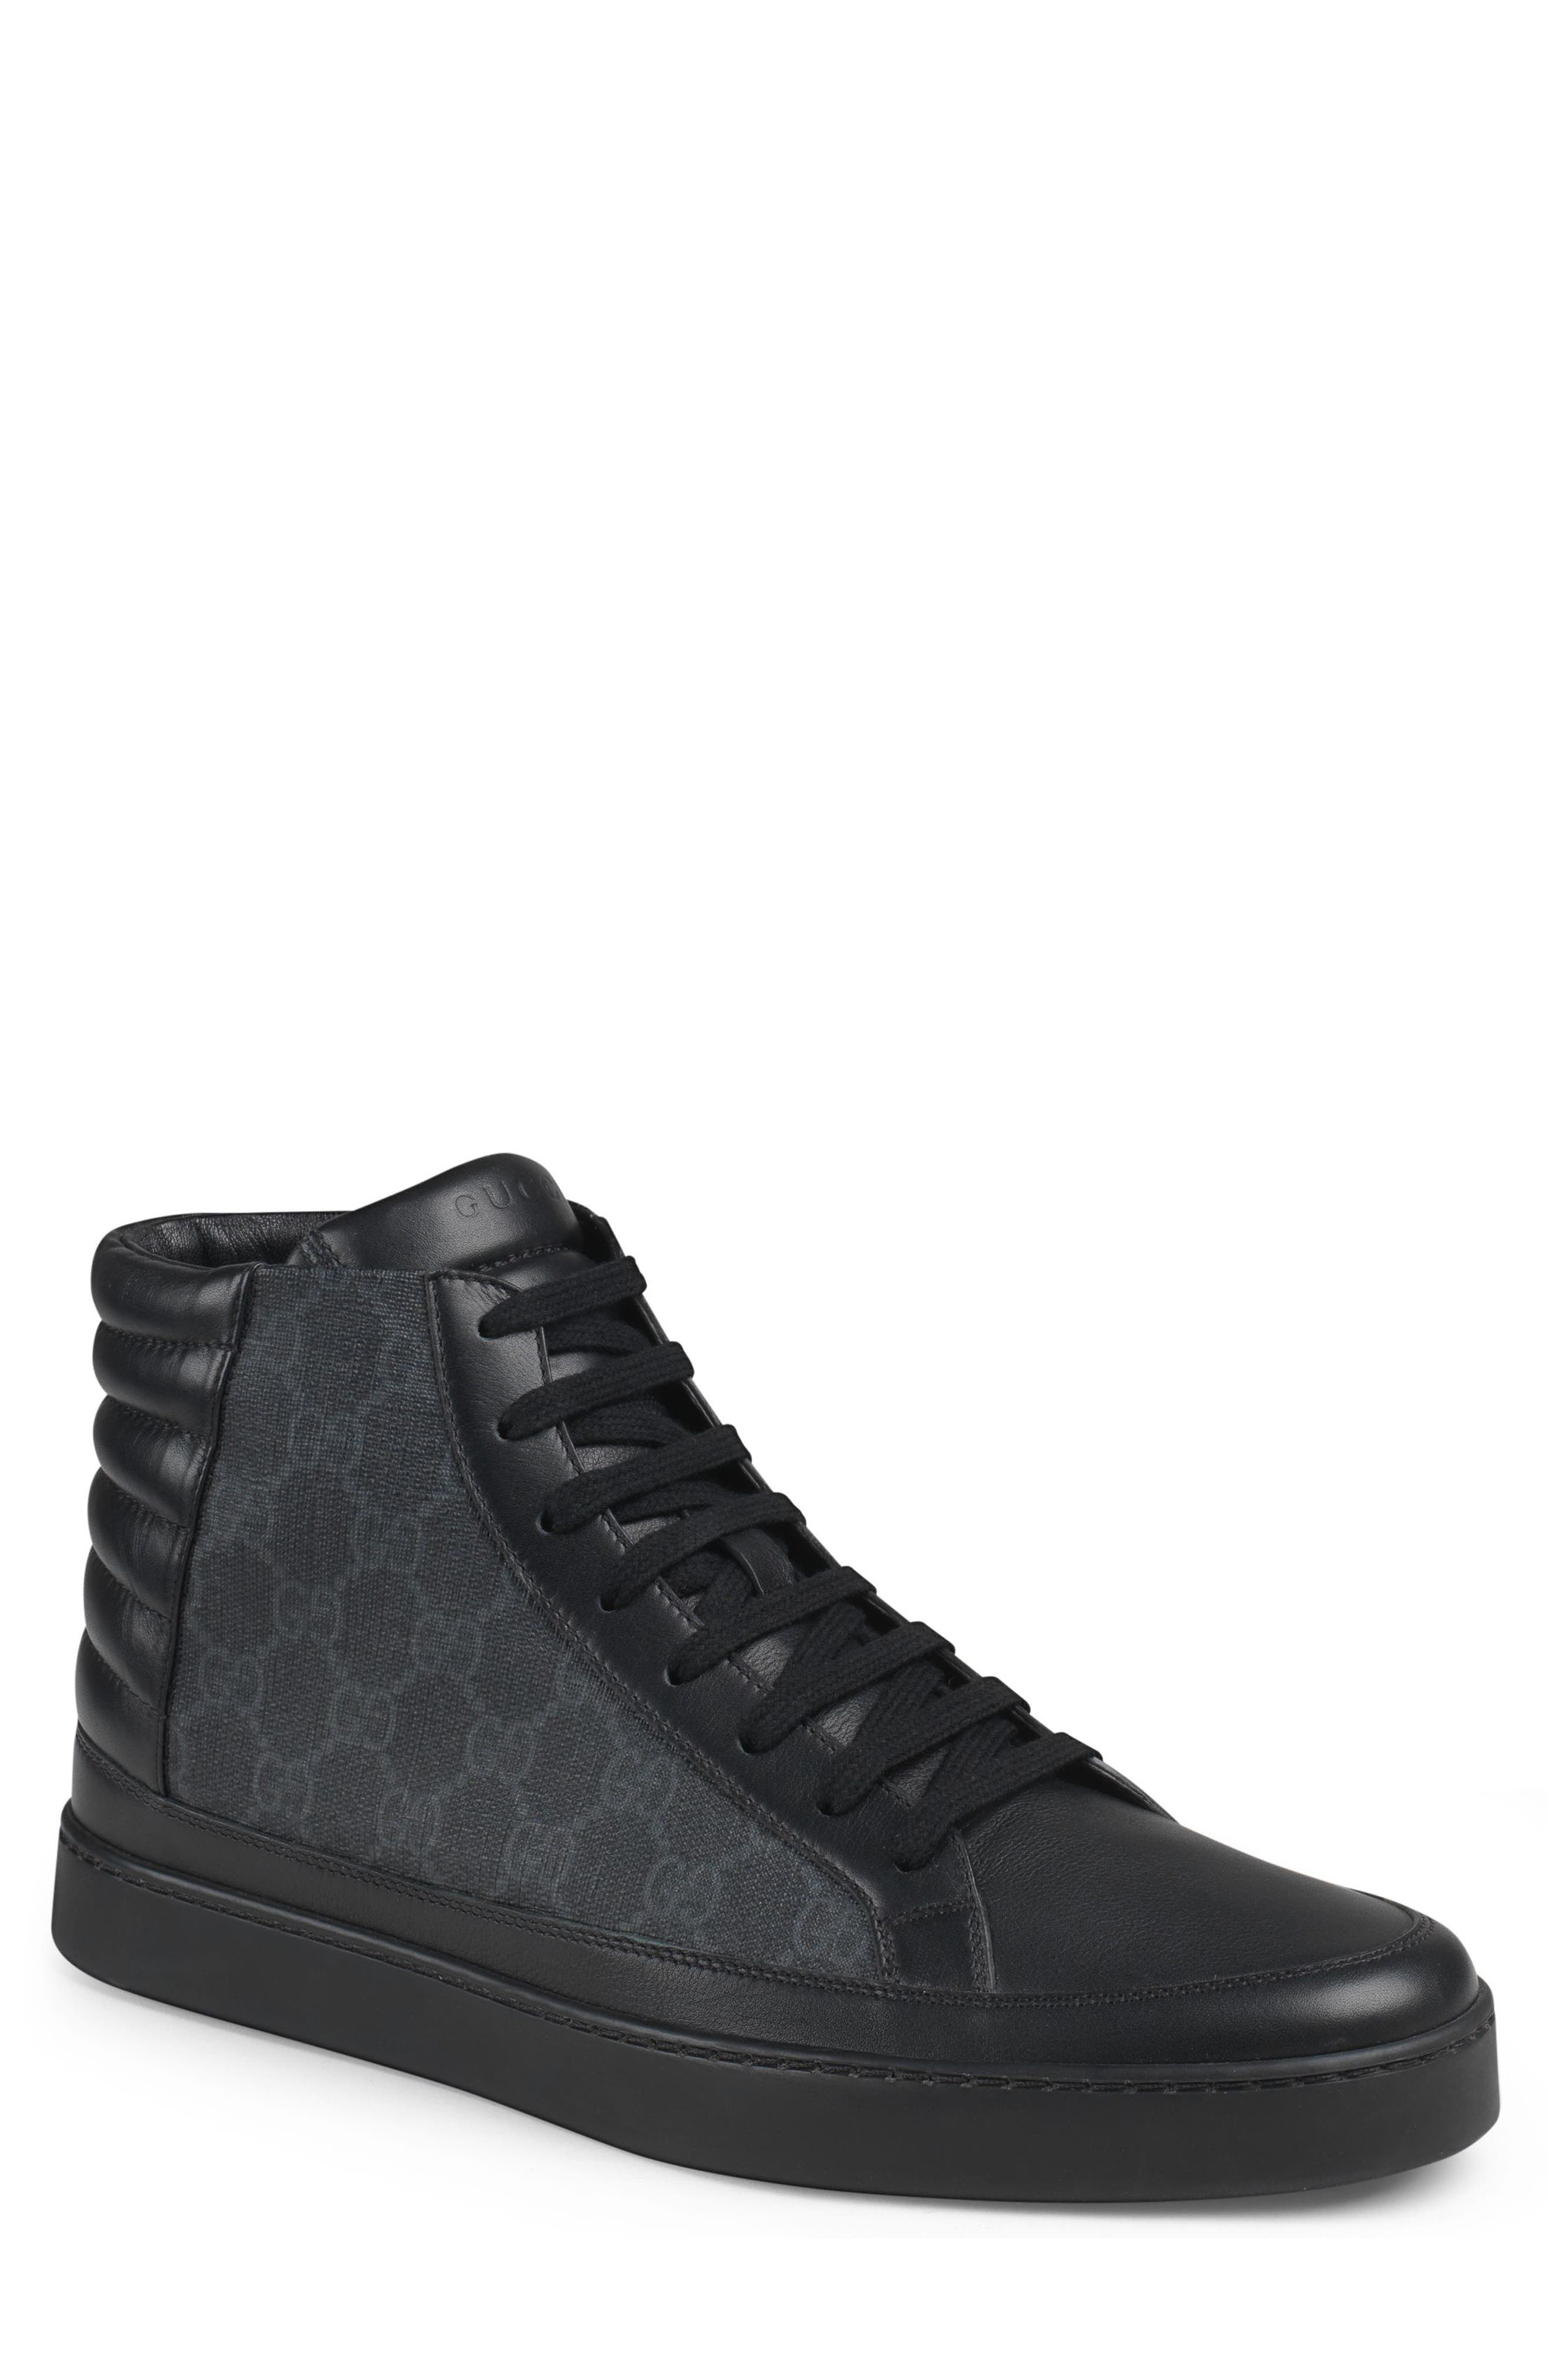 'Common' High Top Sneaker,                         Main,                         color, 002